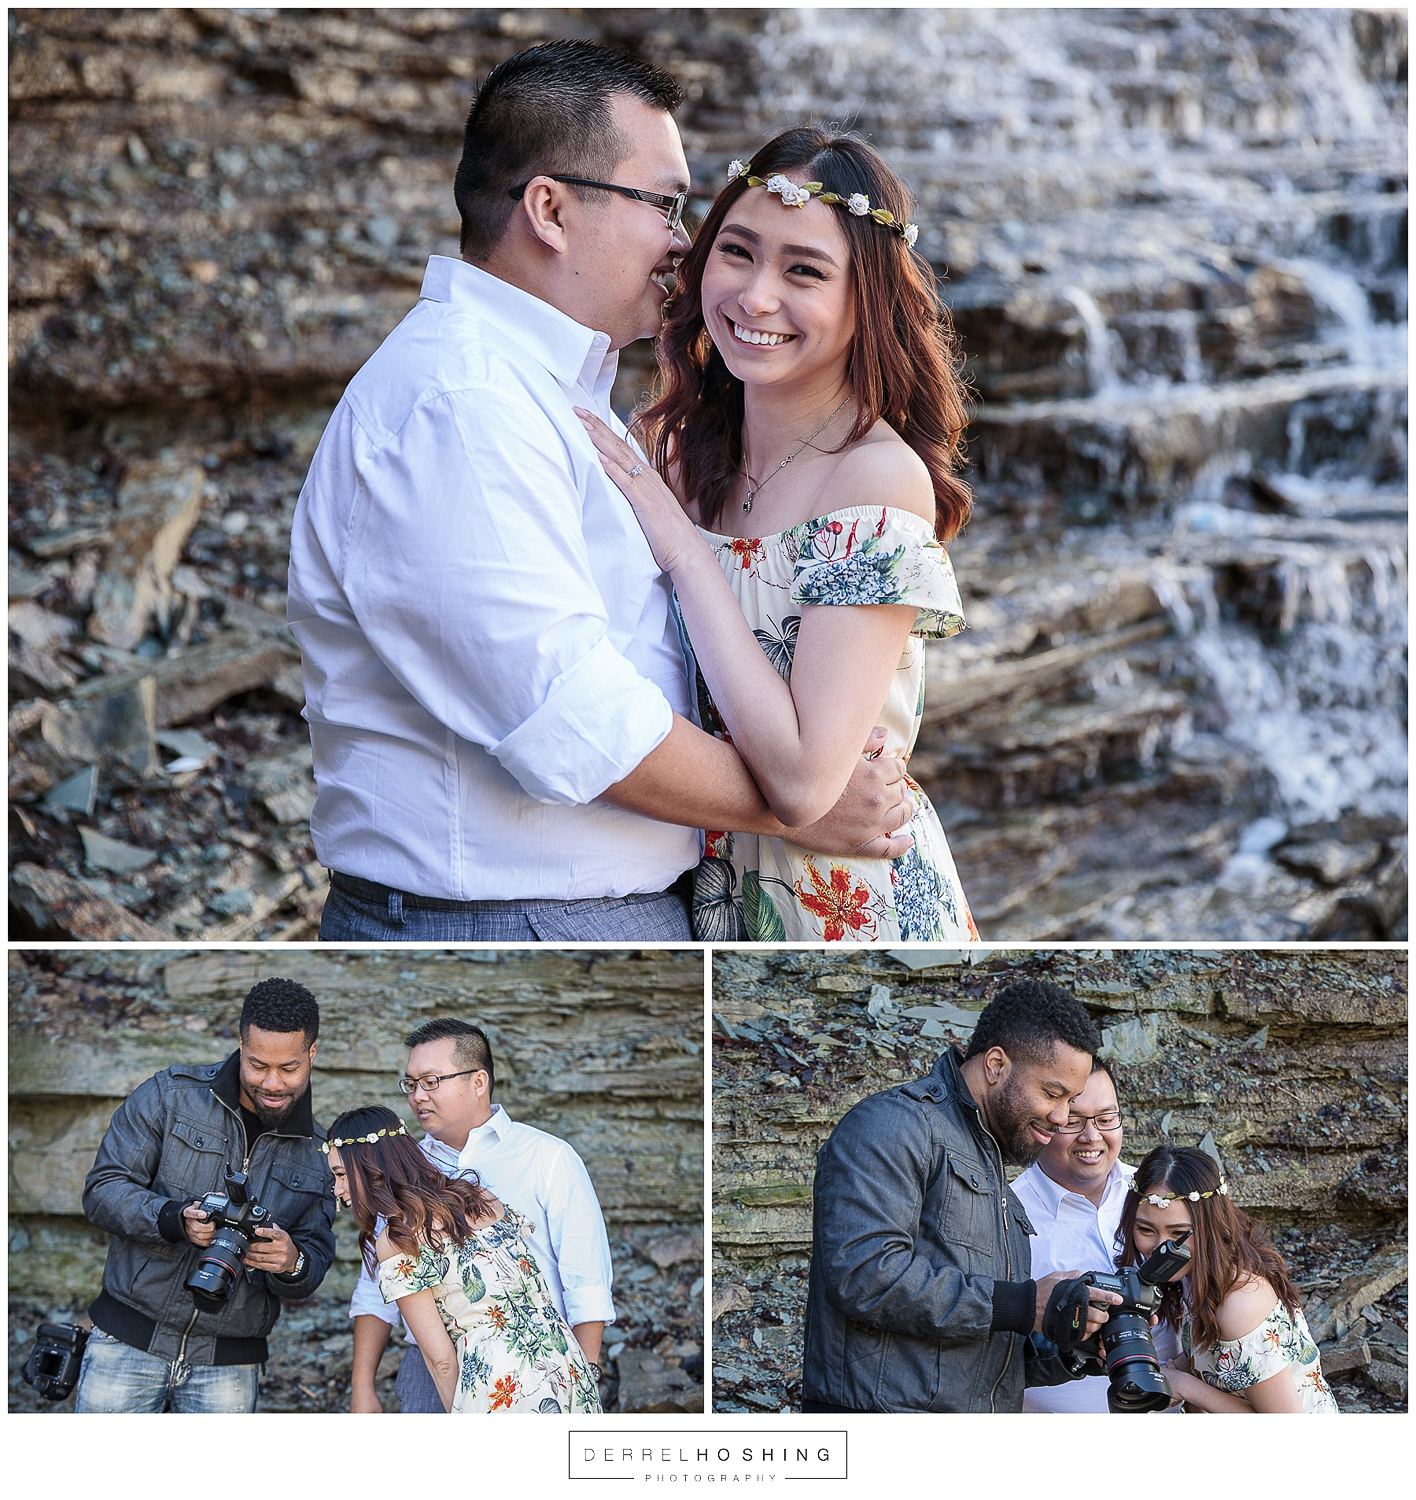 Albion-Falls-Engagment-Shoot-Hamilton-Toronto-Wedding-Photographer-Derrel-Hoshing-0006.jpg